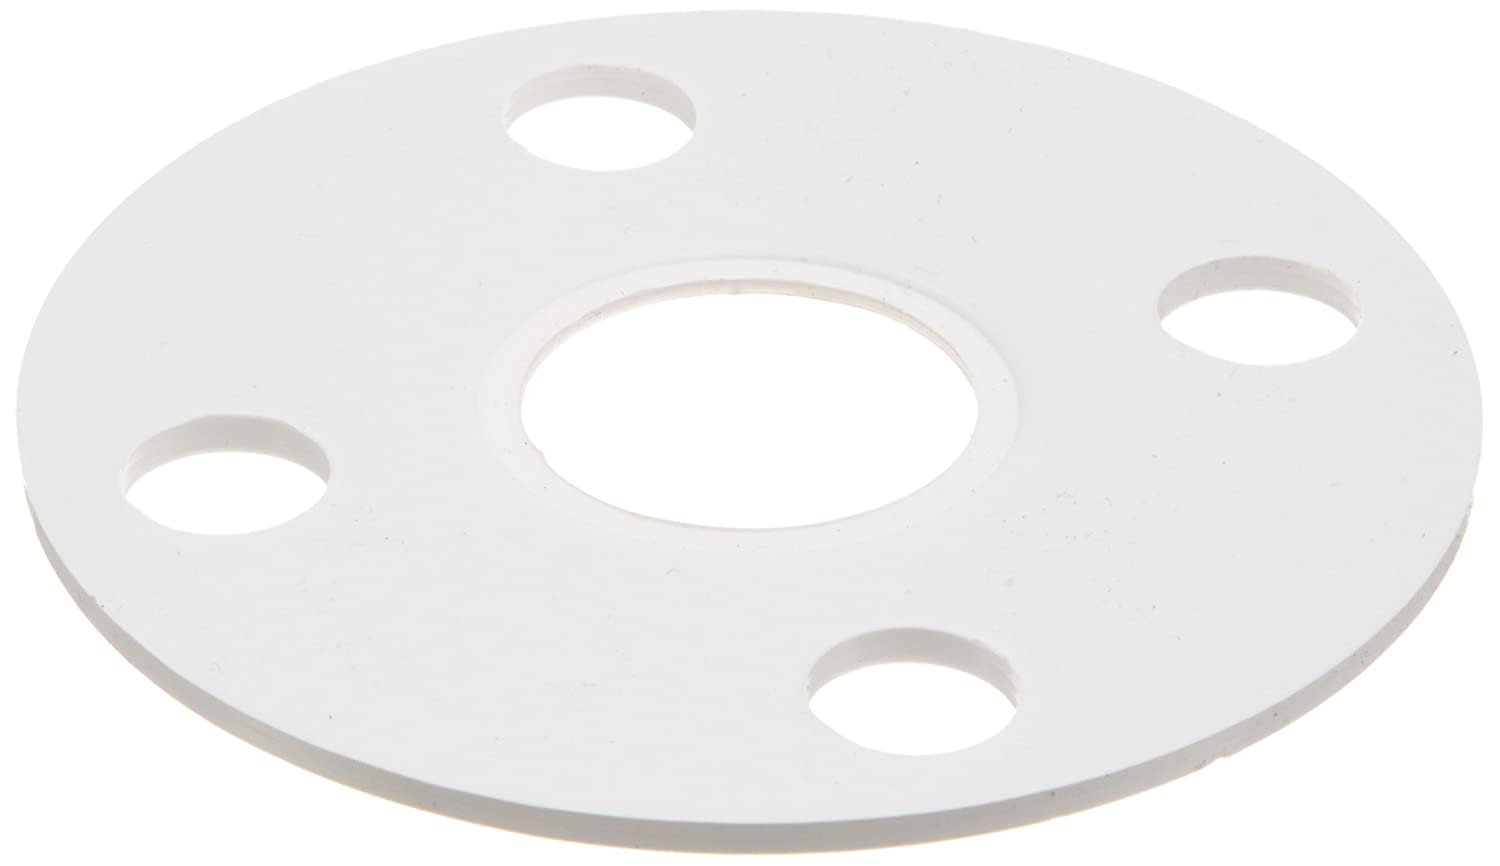 Small Parts FF-TFE-GTTG-006-150-0075 Pack of 1 1//16 Thick 3-7//8 OD 1//16 Thick 3//4 Pipe Size 1-1//16 ID 3-7//8 OD 1-1//16 ID White Gore-Gr Expanded PTFE Flange Gasket for Low Pressure Pack of 1 3//4 Pipe Size Fits Class 150 Flange Full Face